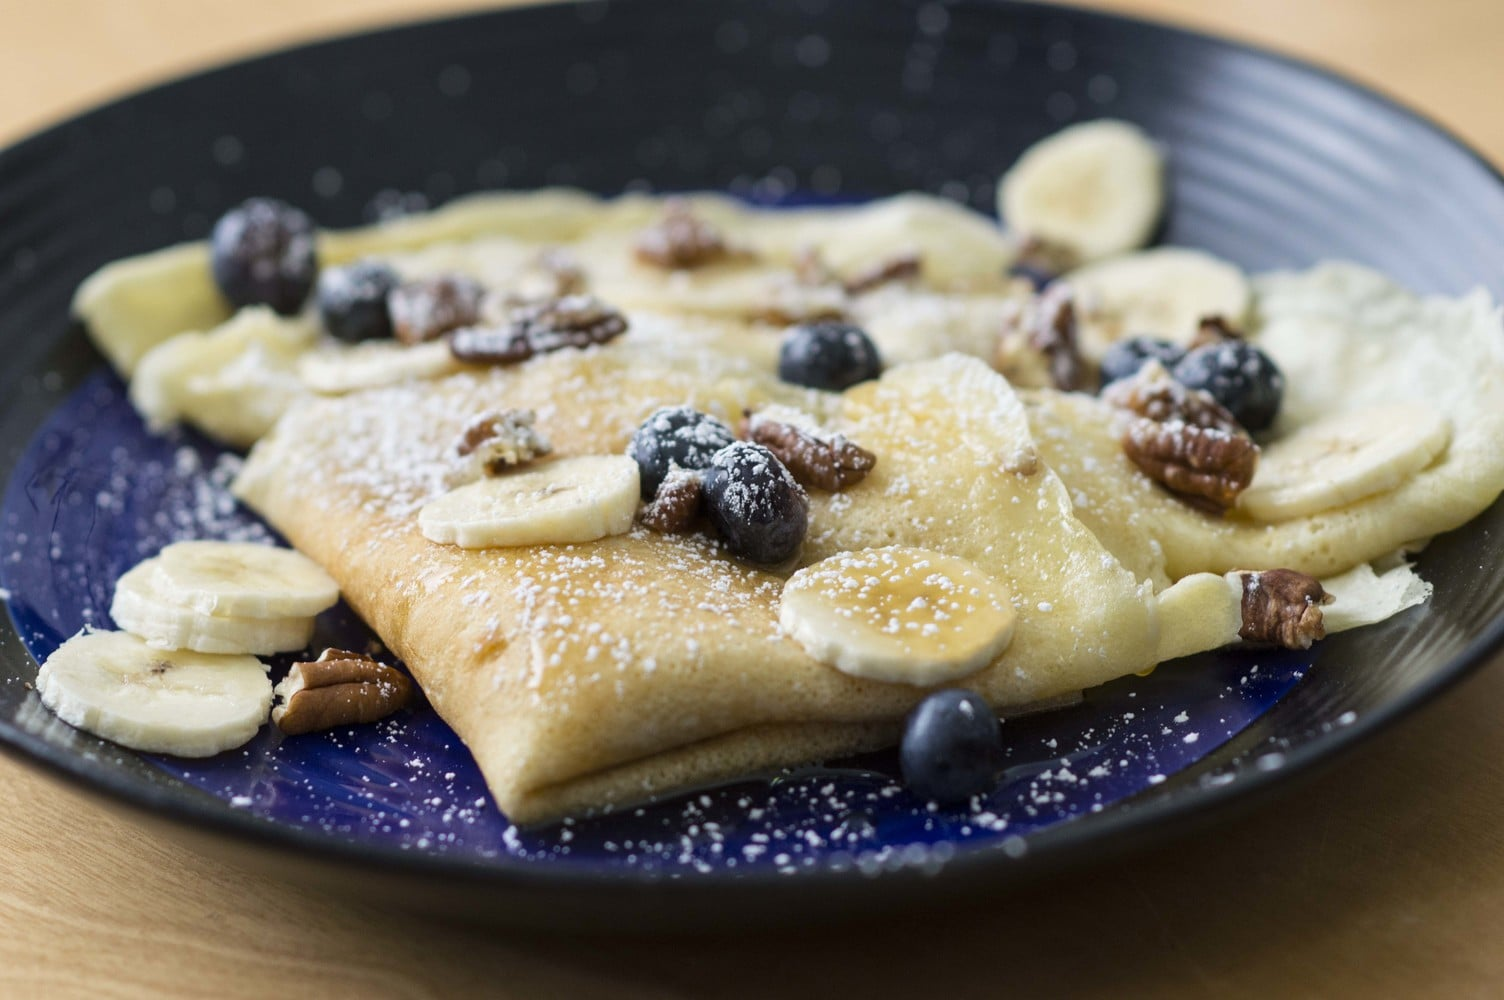 blueberry ricotta crepes plated and ready to eat